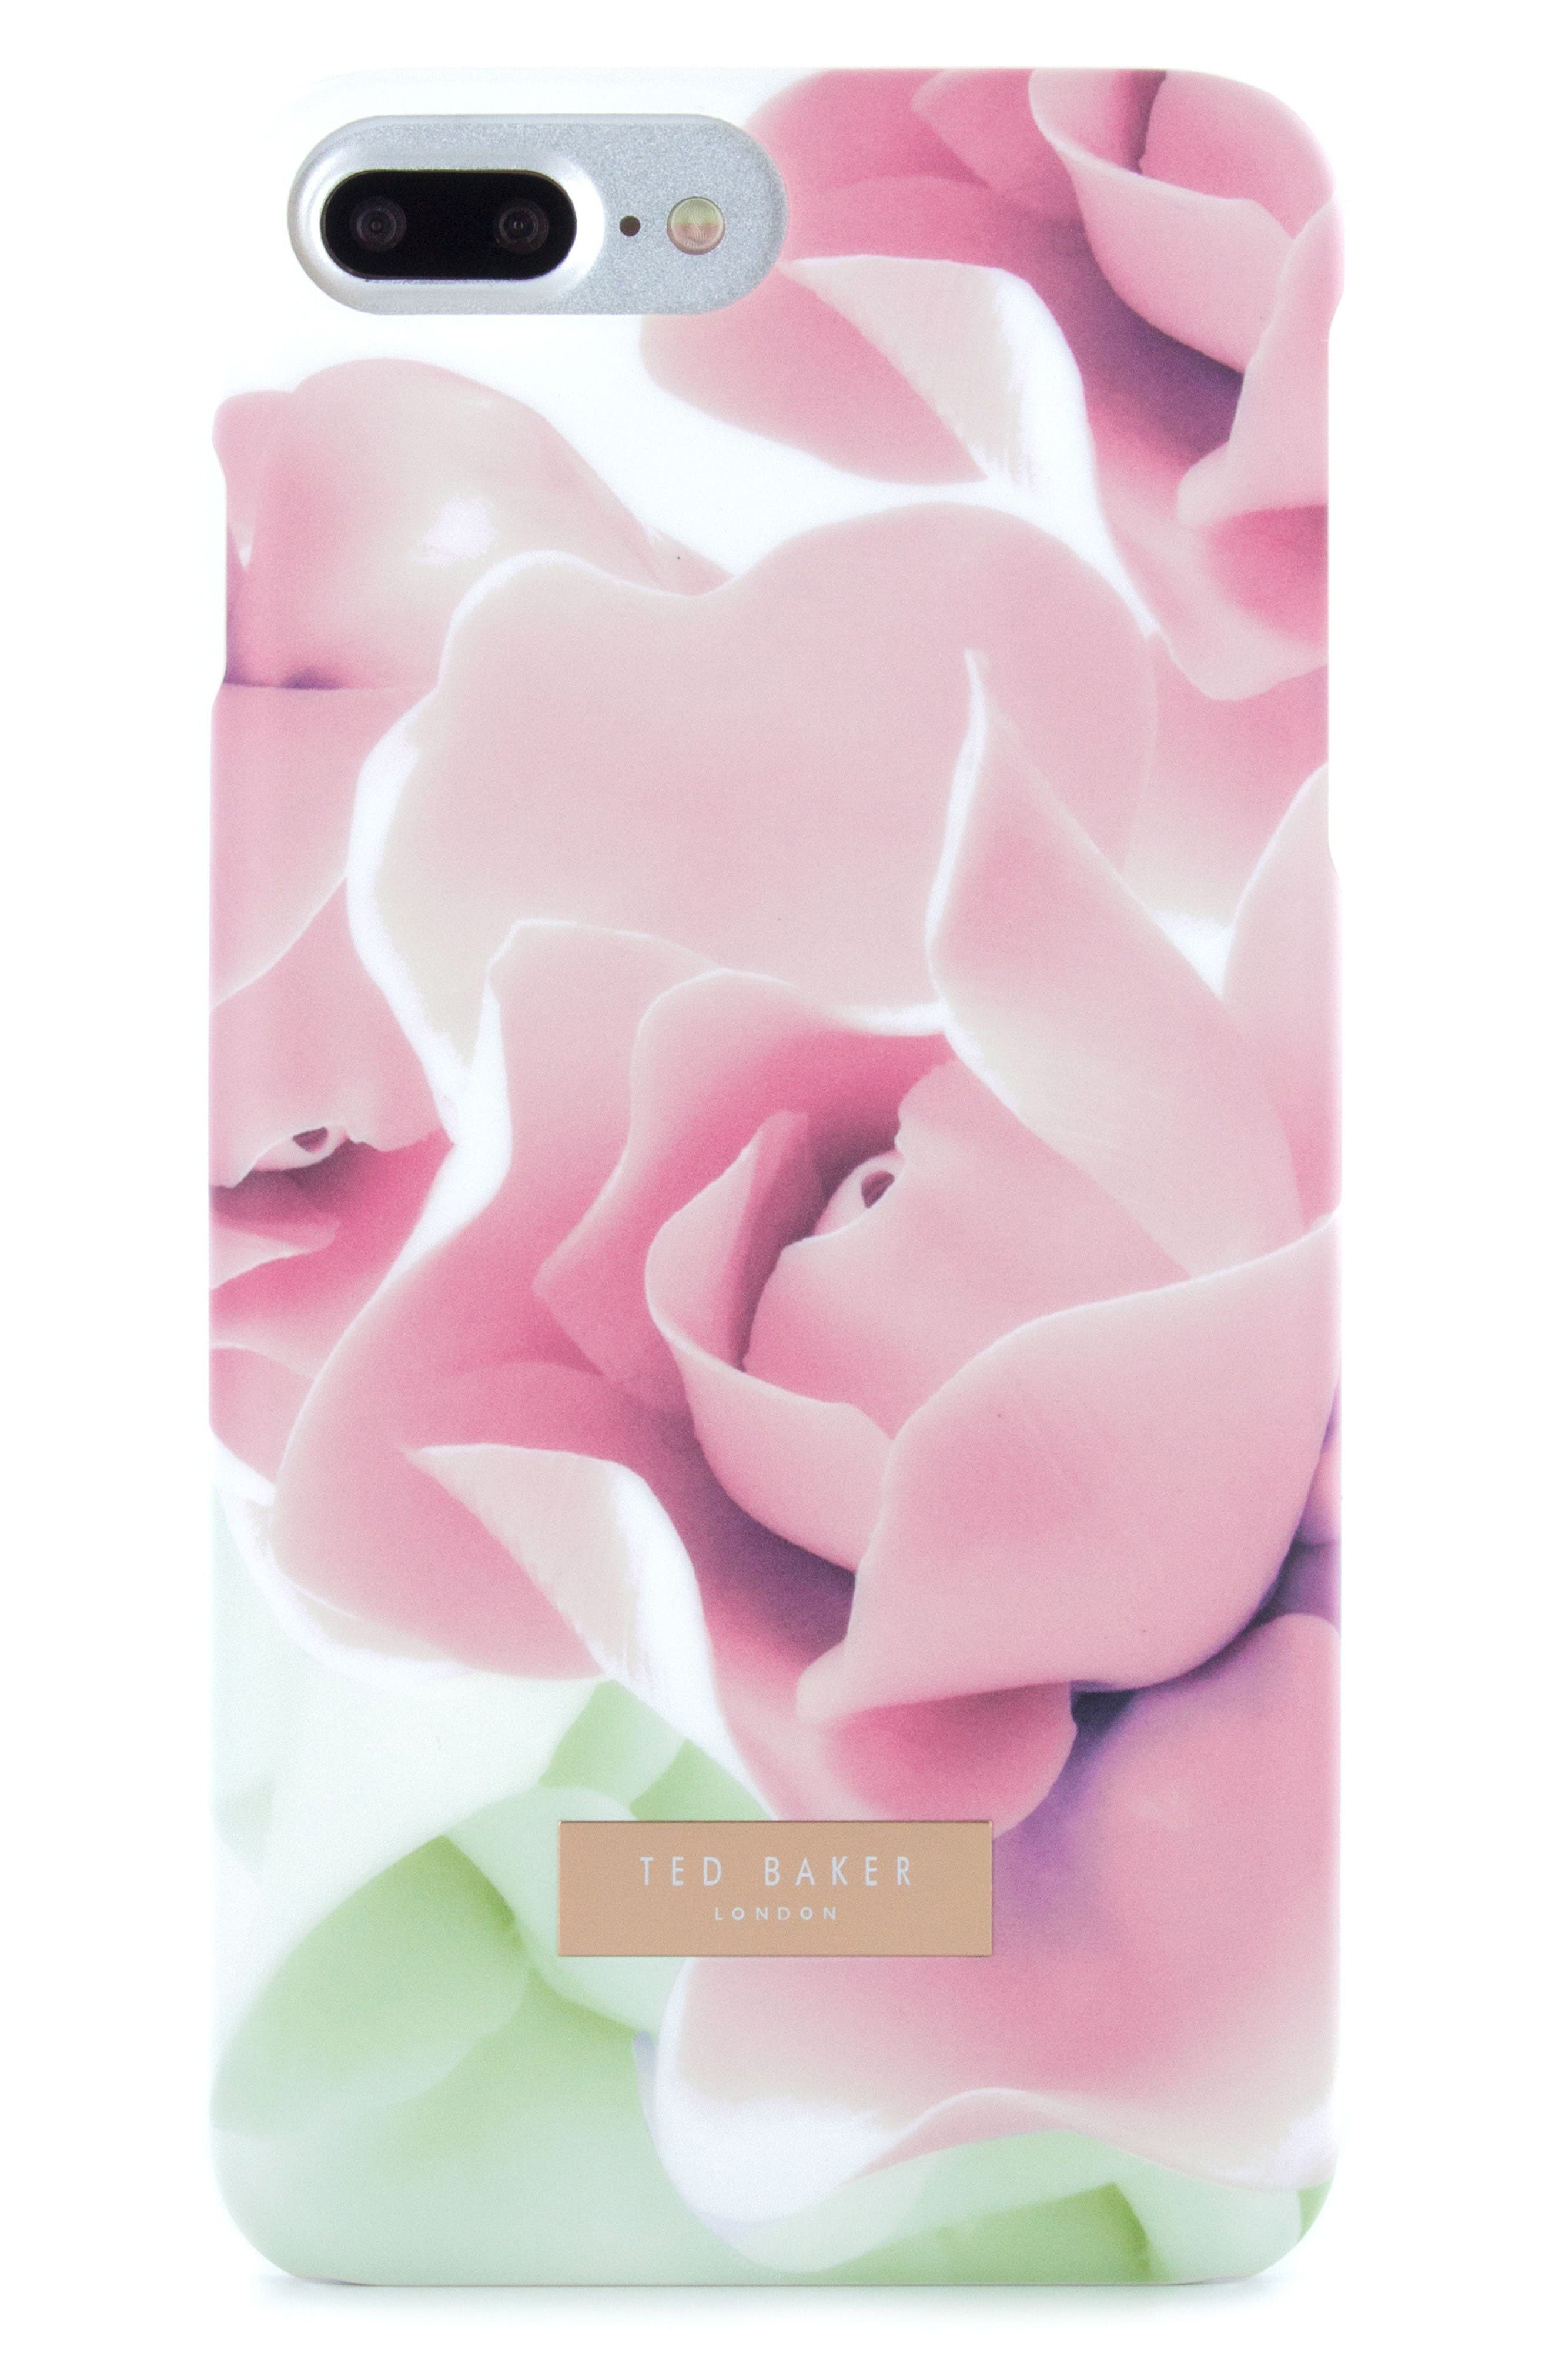 Main Image - Ted Baker London Anotei Rose iPhone 6/6s/7/8 & 6/6s/7/8 Plus Case